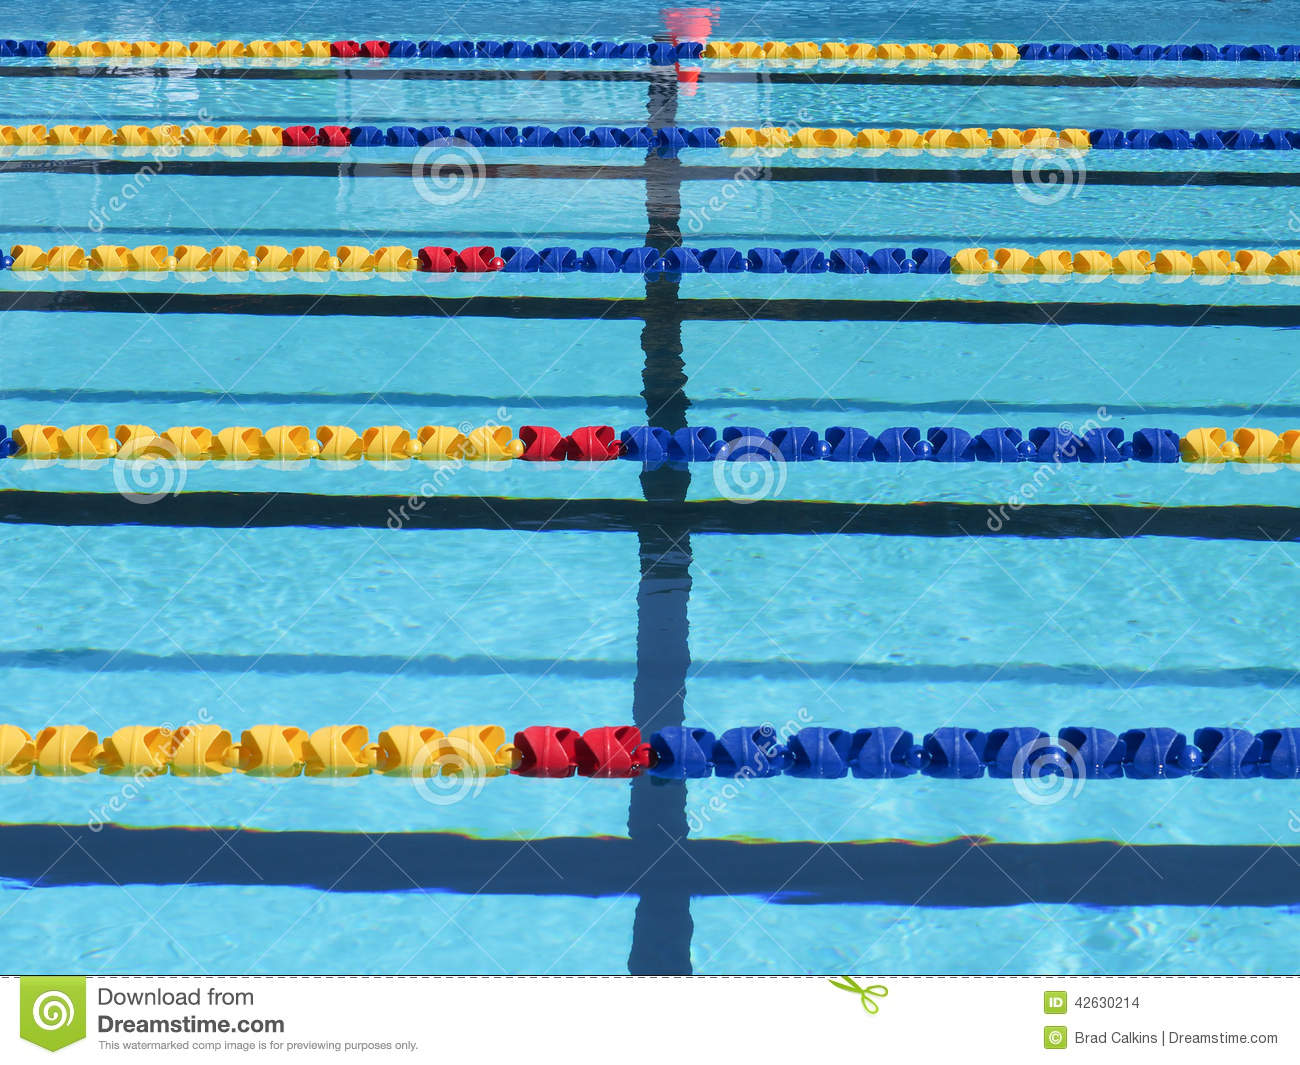 Swimming Pool Lane Ropes Stock Photo Image Of Markers